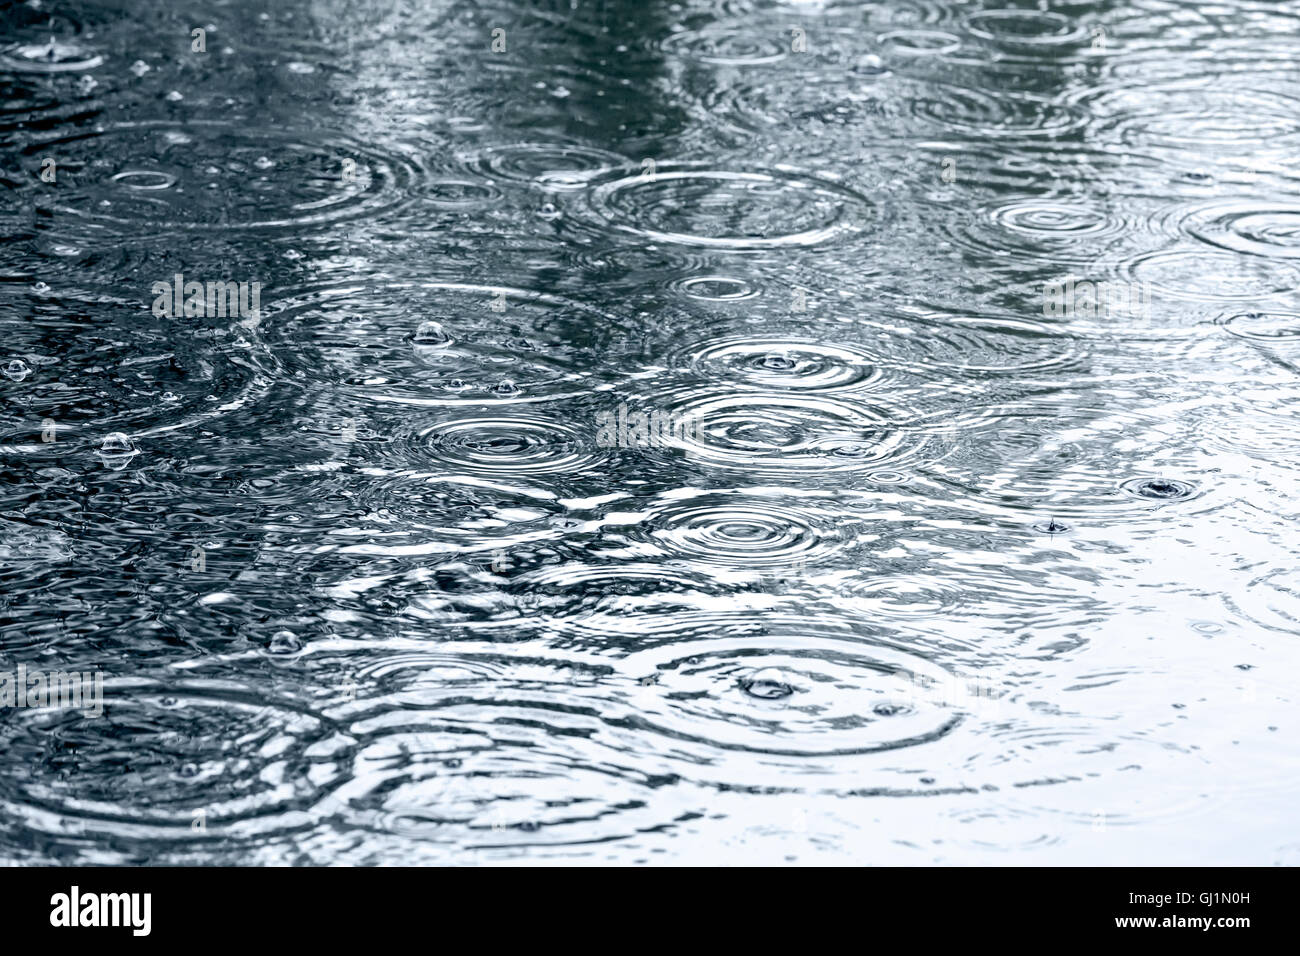 sidewalk with rain drops and ripples in puddles - Stock Image